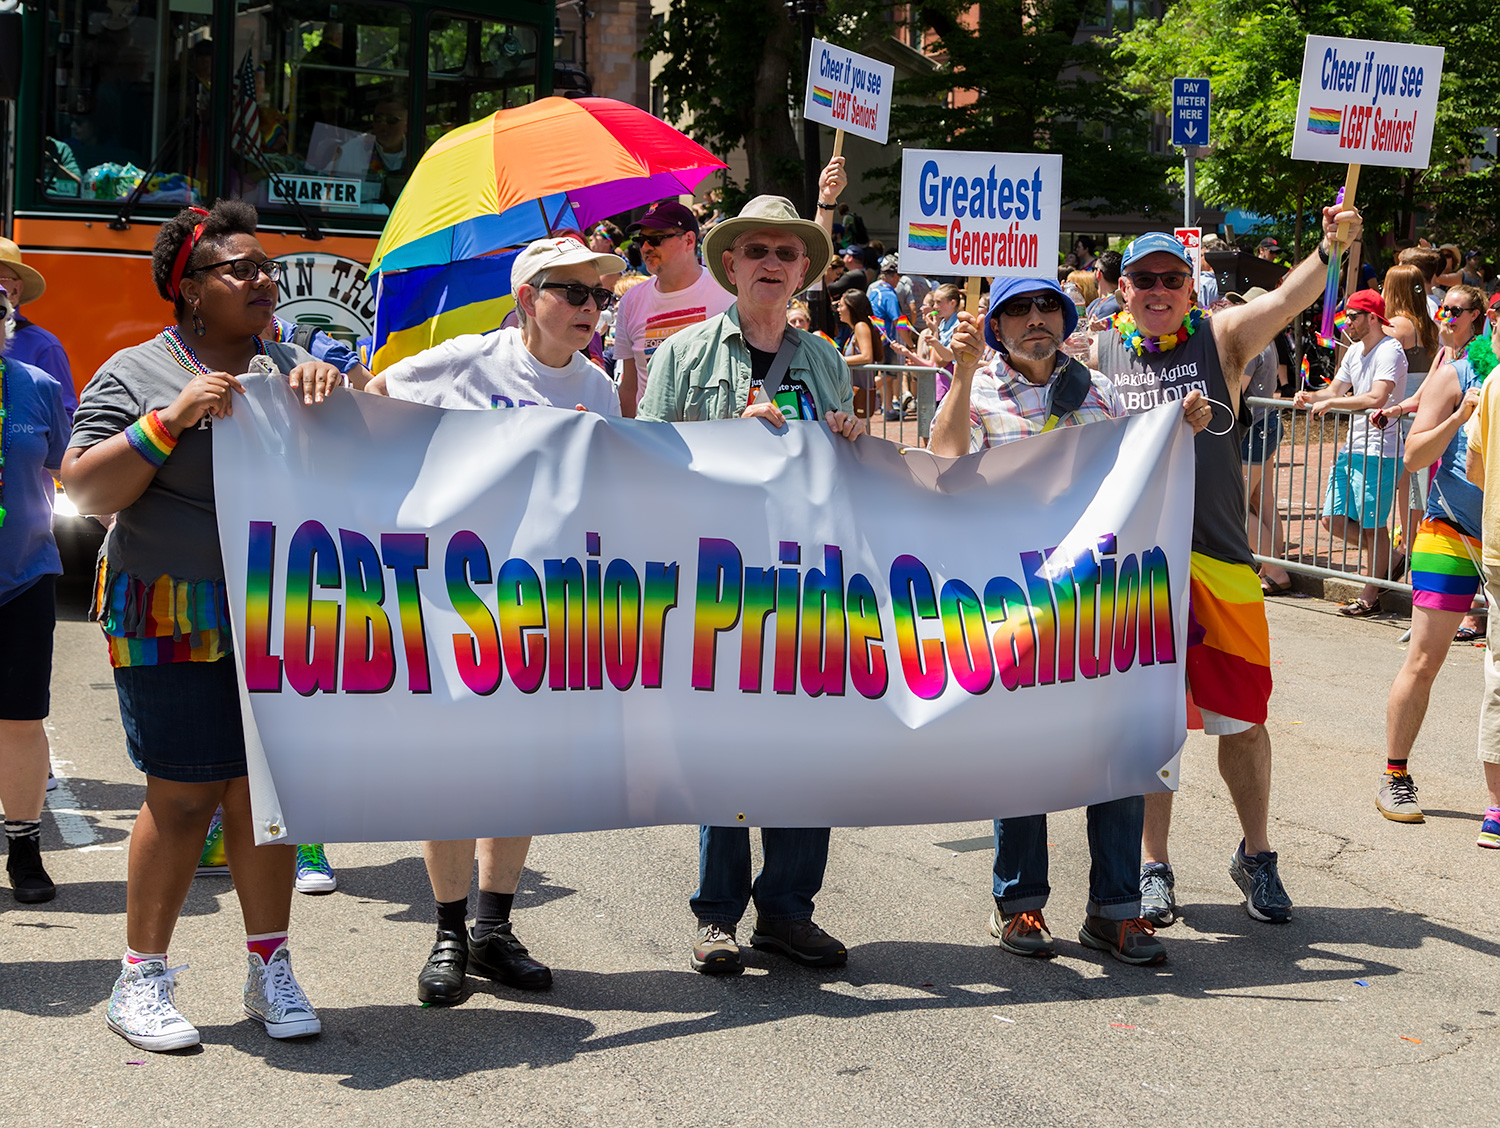 LGBT Senior Pride Coalition at Pride Parade